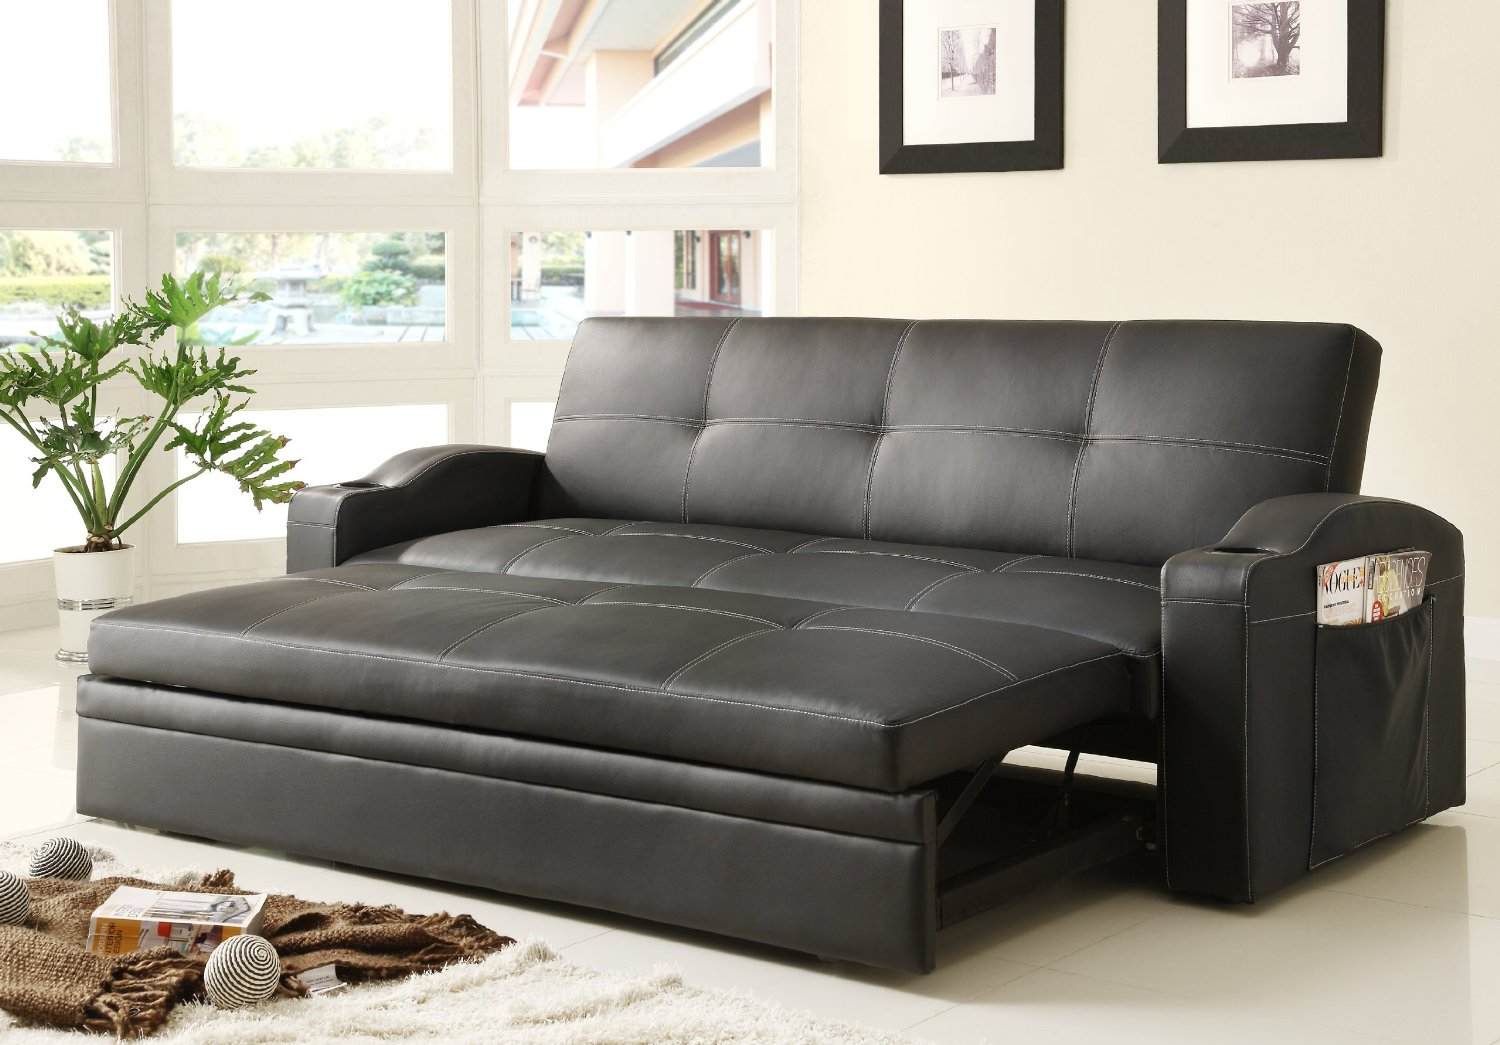 Synthetic Black Leather Adjule Couch With Pull Out Extra Bed